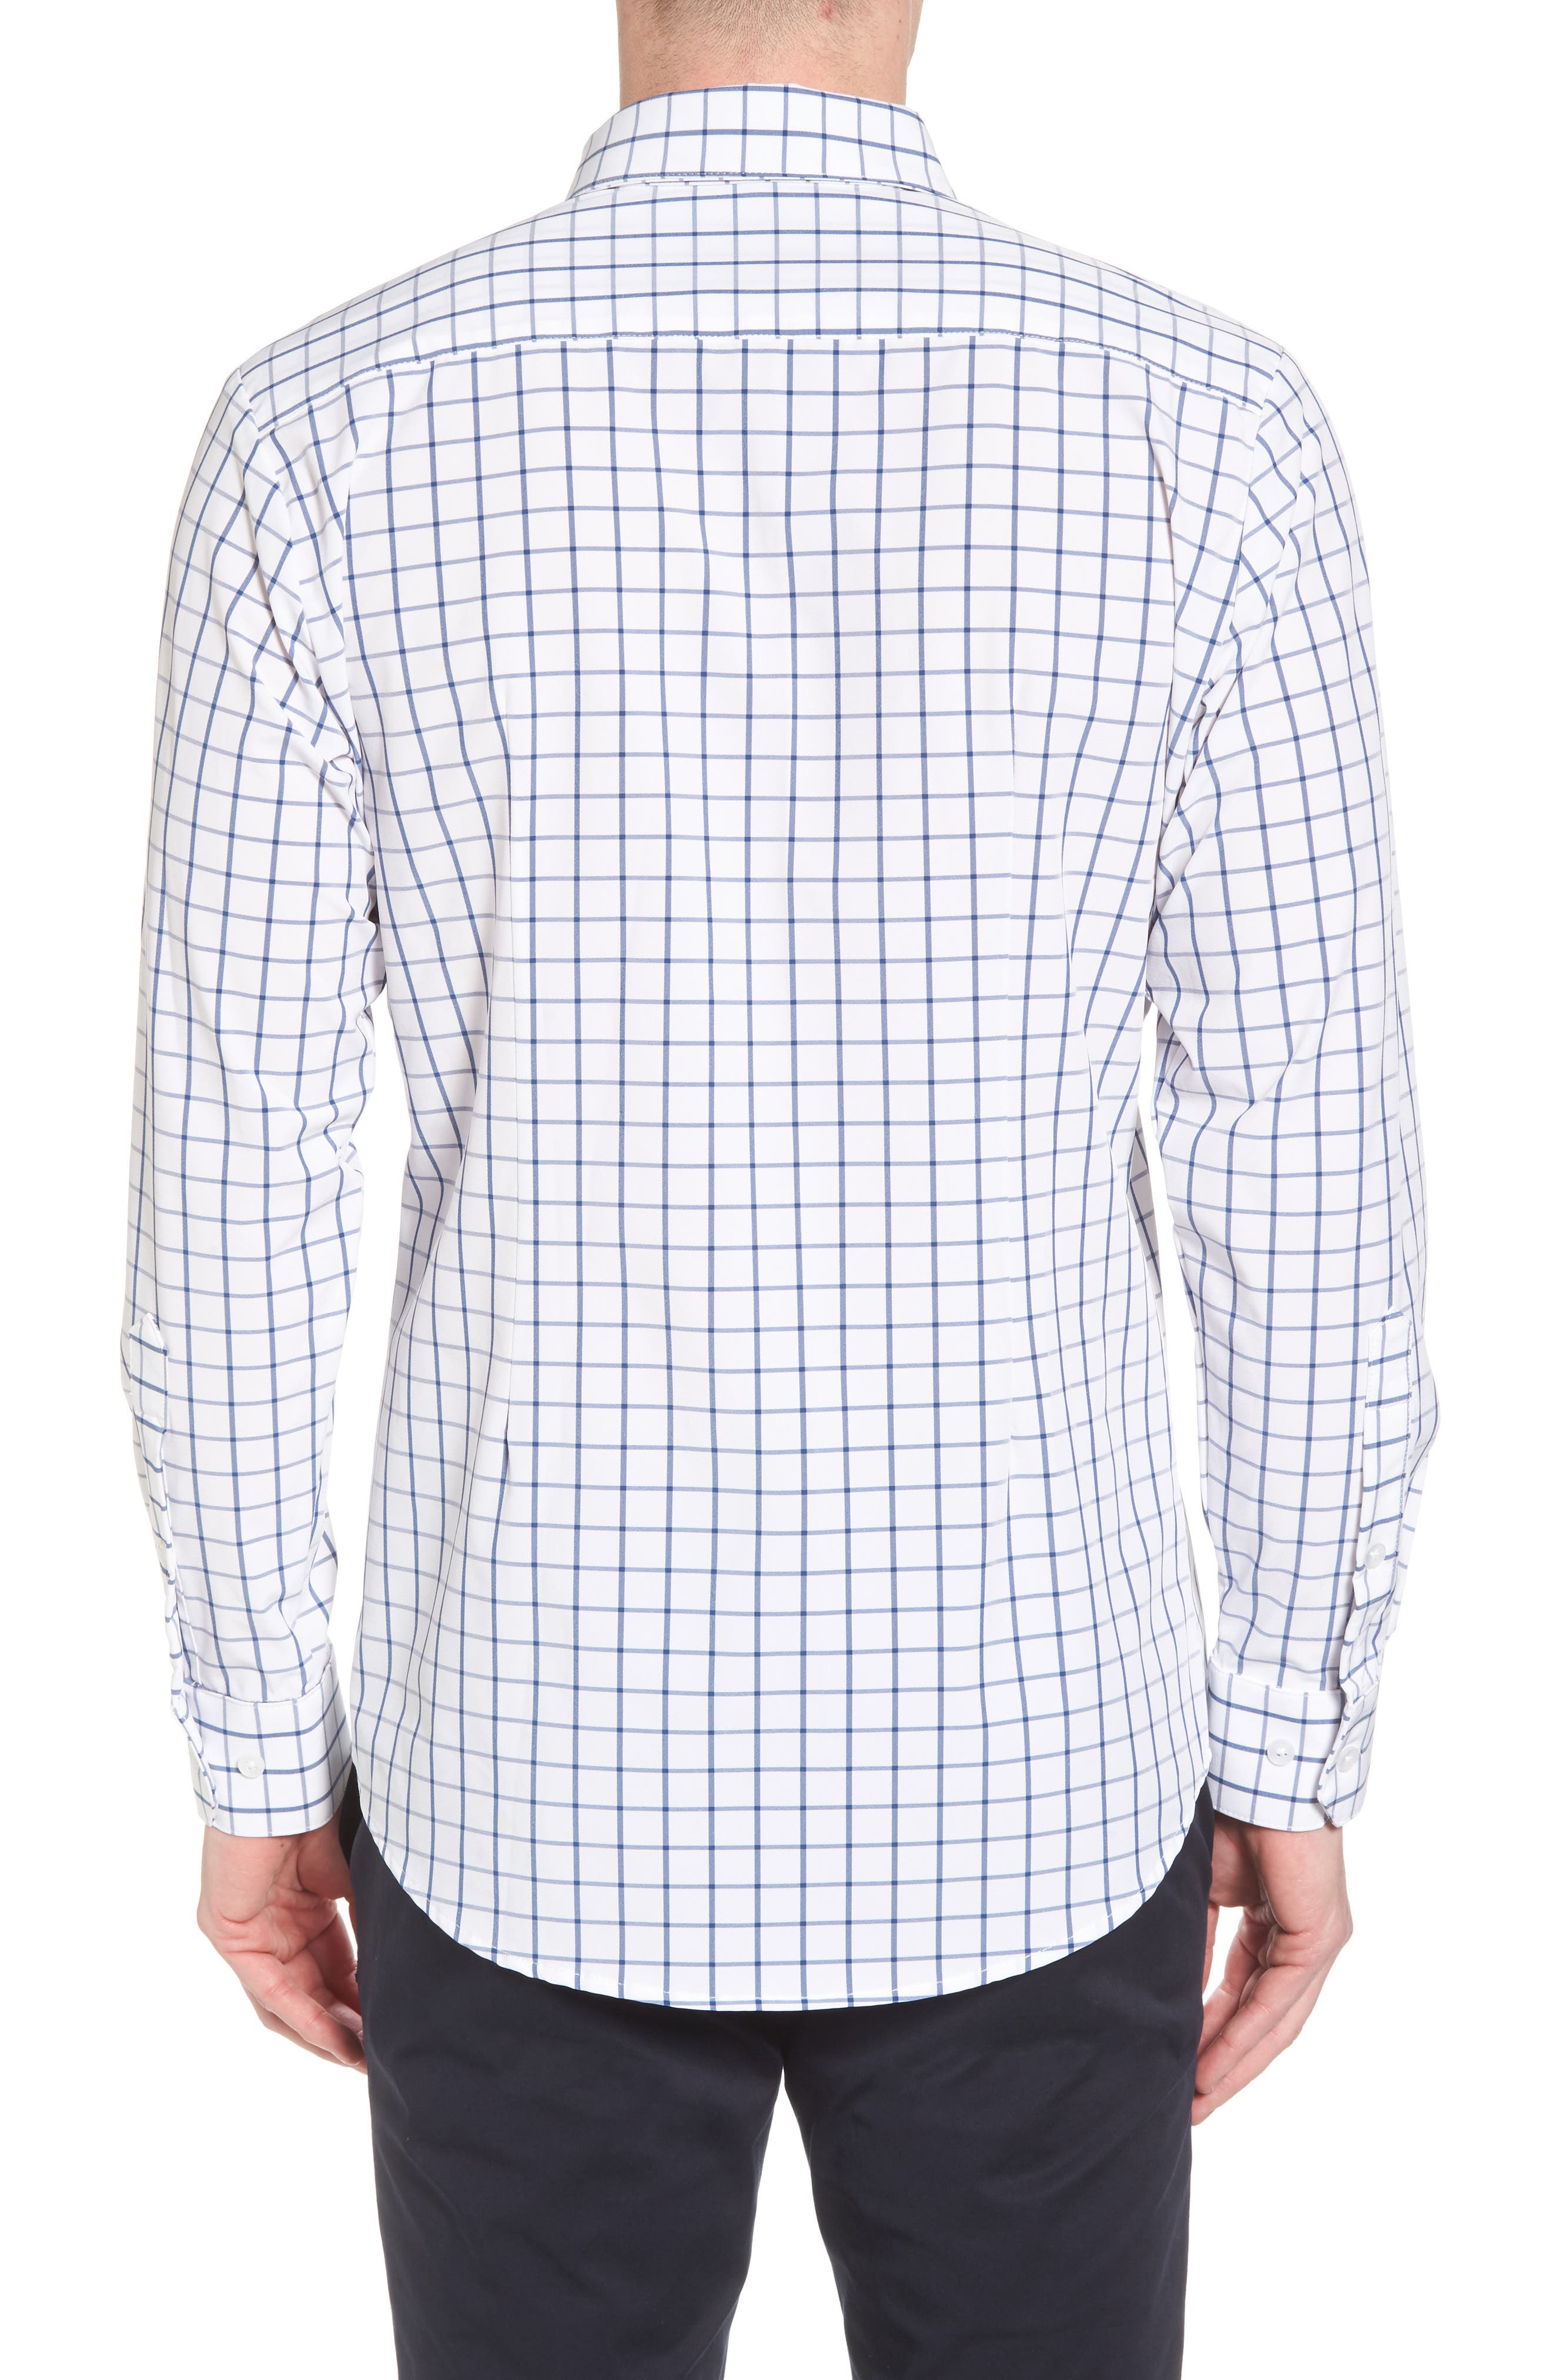 Bowie Windowpane Performance Sport Shirt,                             Alternate thumbnail 2, color,                             NAVY